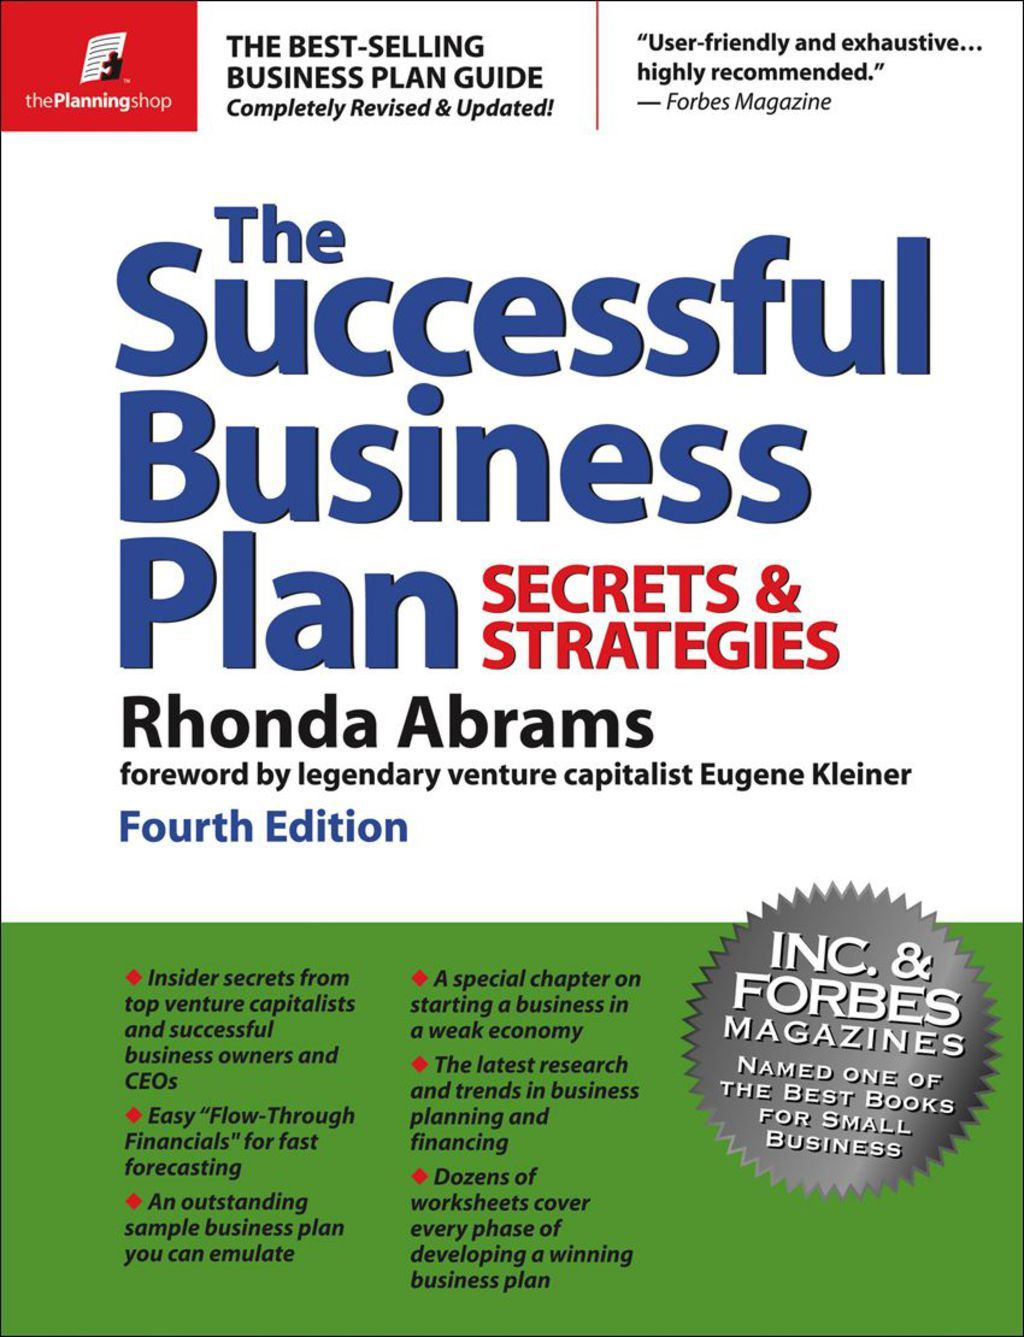 The Successful Business Plan Secrets and Strategies